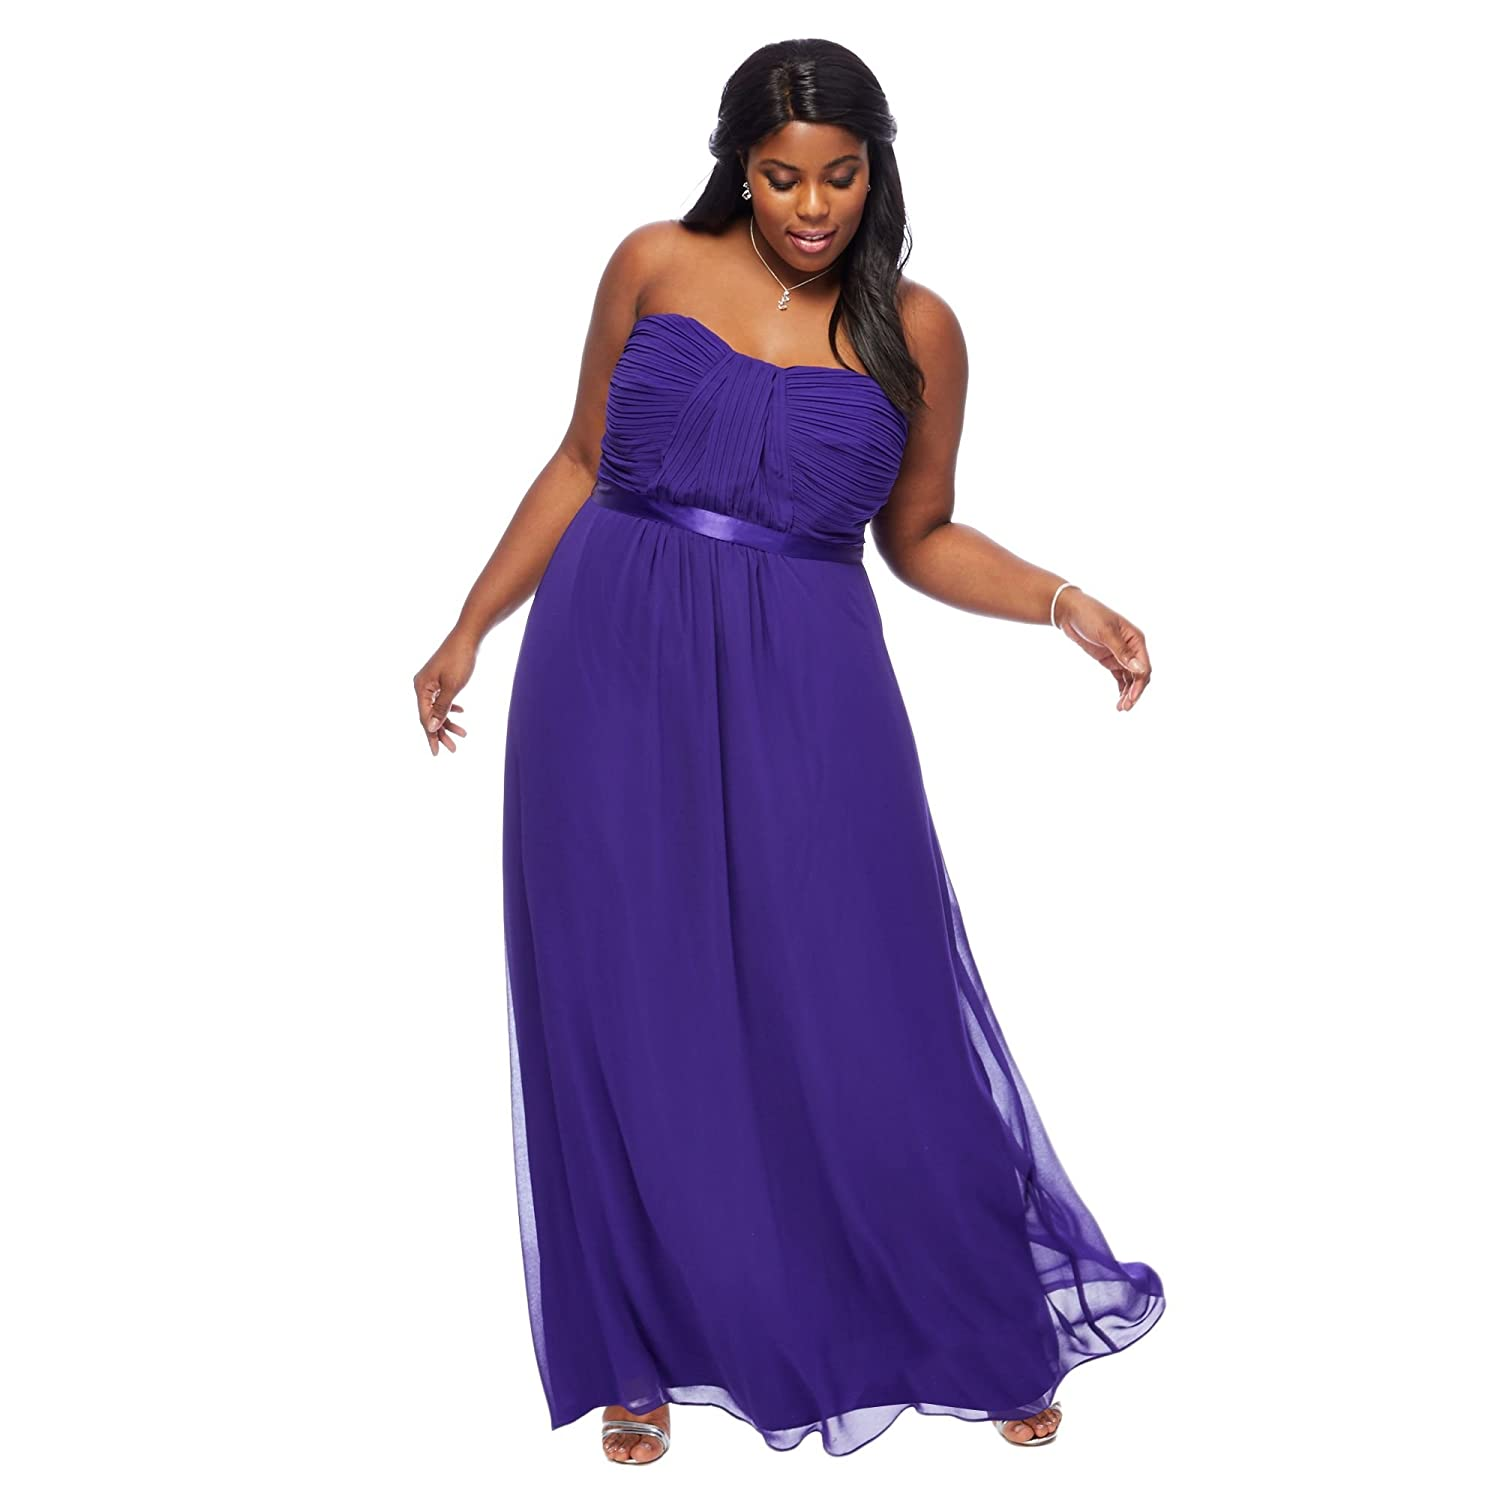 Debut Womens Purple \'Sophia\' Bandeau Plus Size Bridesmaid Dress 20 ...